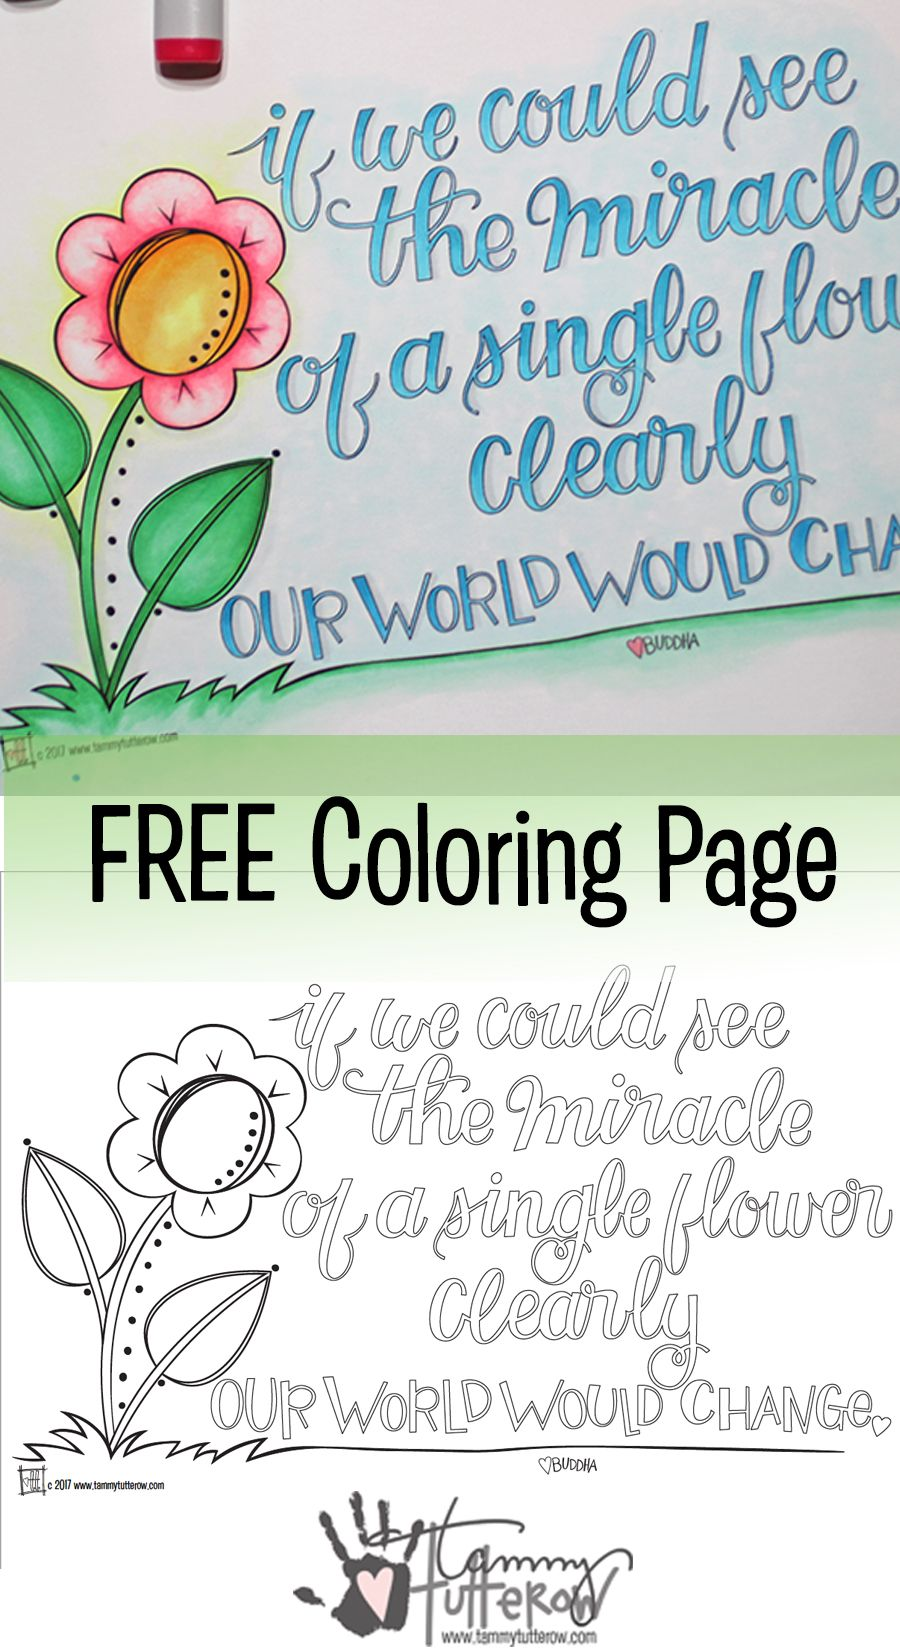 Free Coloring Page: The Miracle of a Single Flower | Pinterest ...